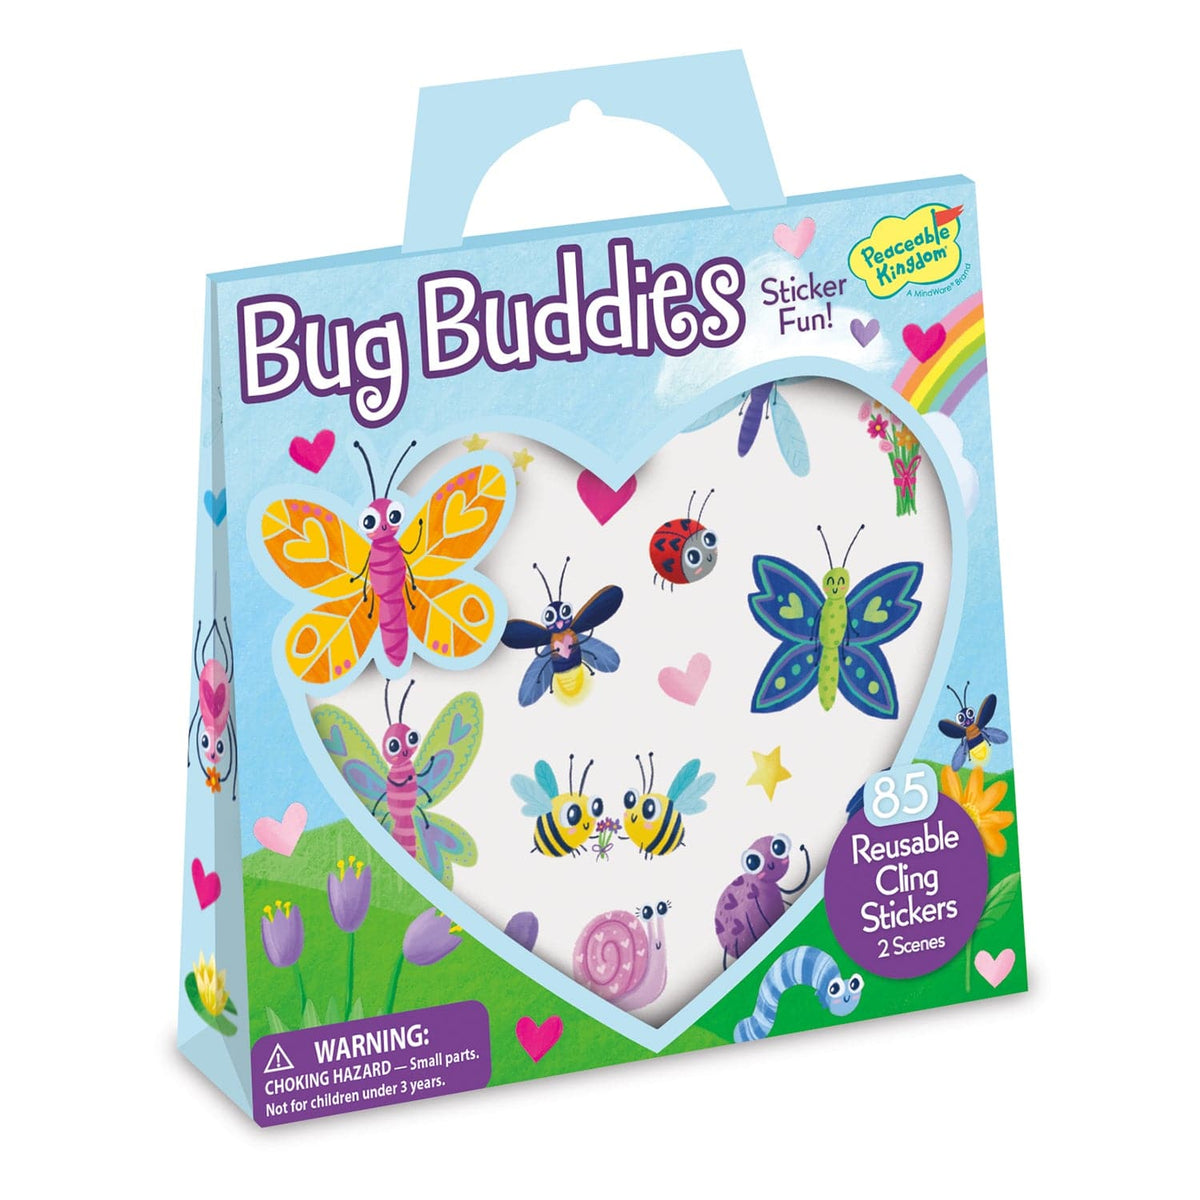 Peaceable Kingdom Reusable Sticker Totes - Bug Buddies - Legacy Toys